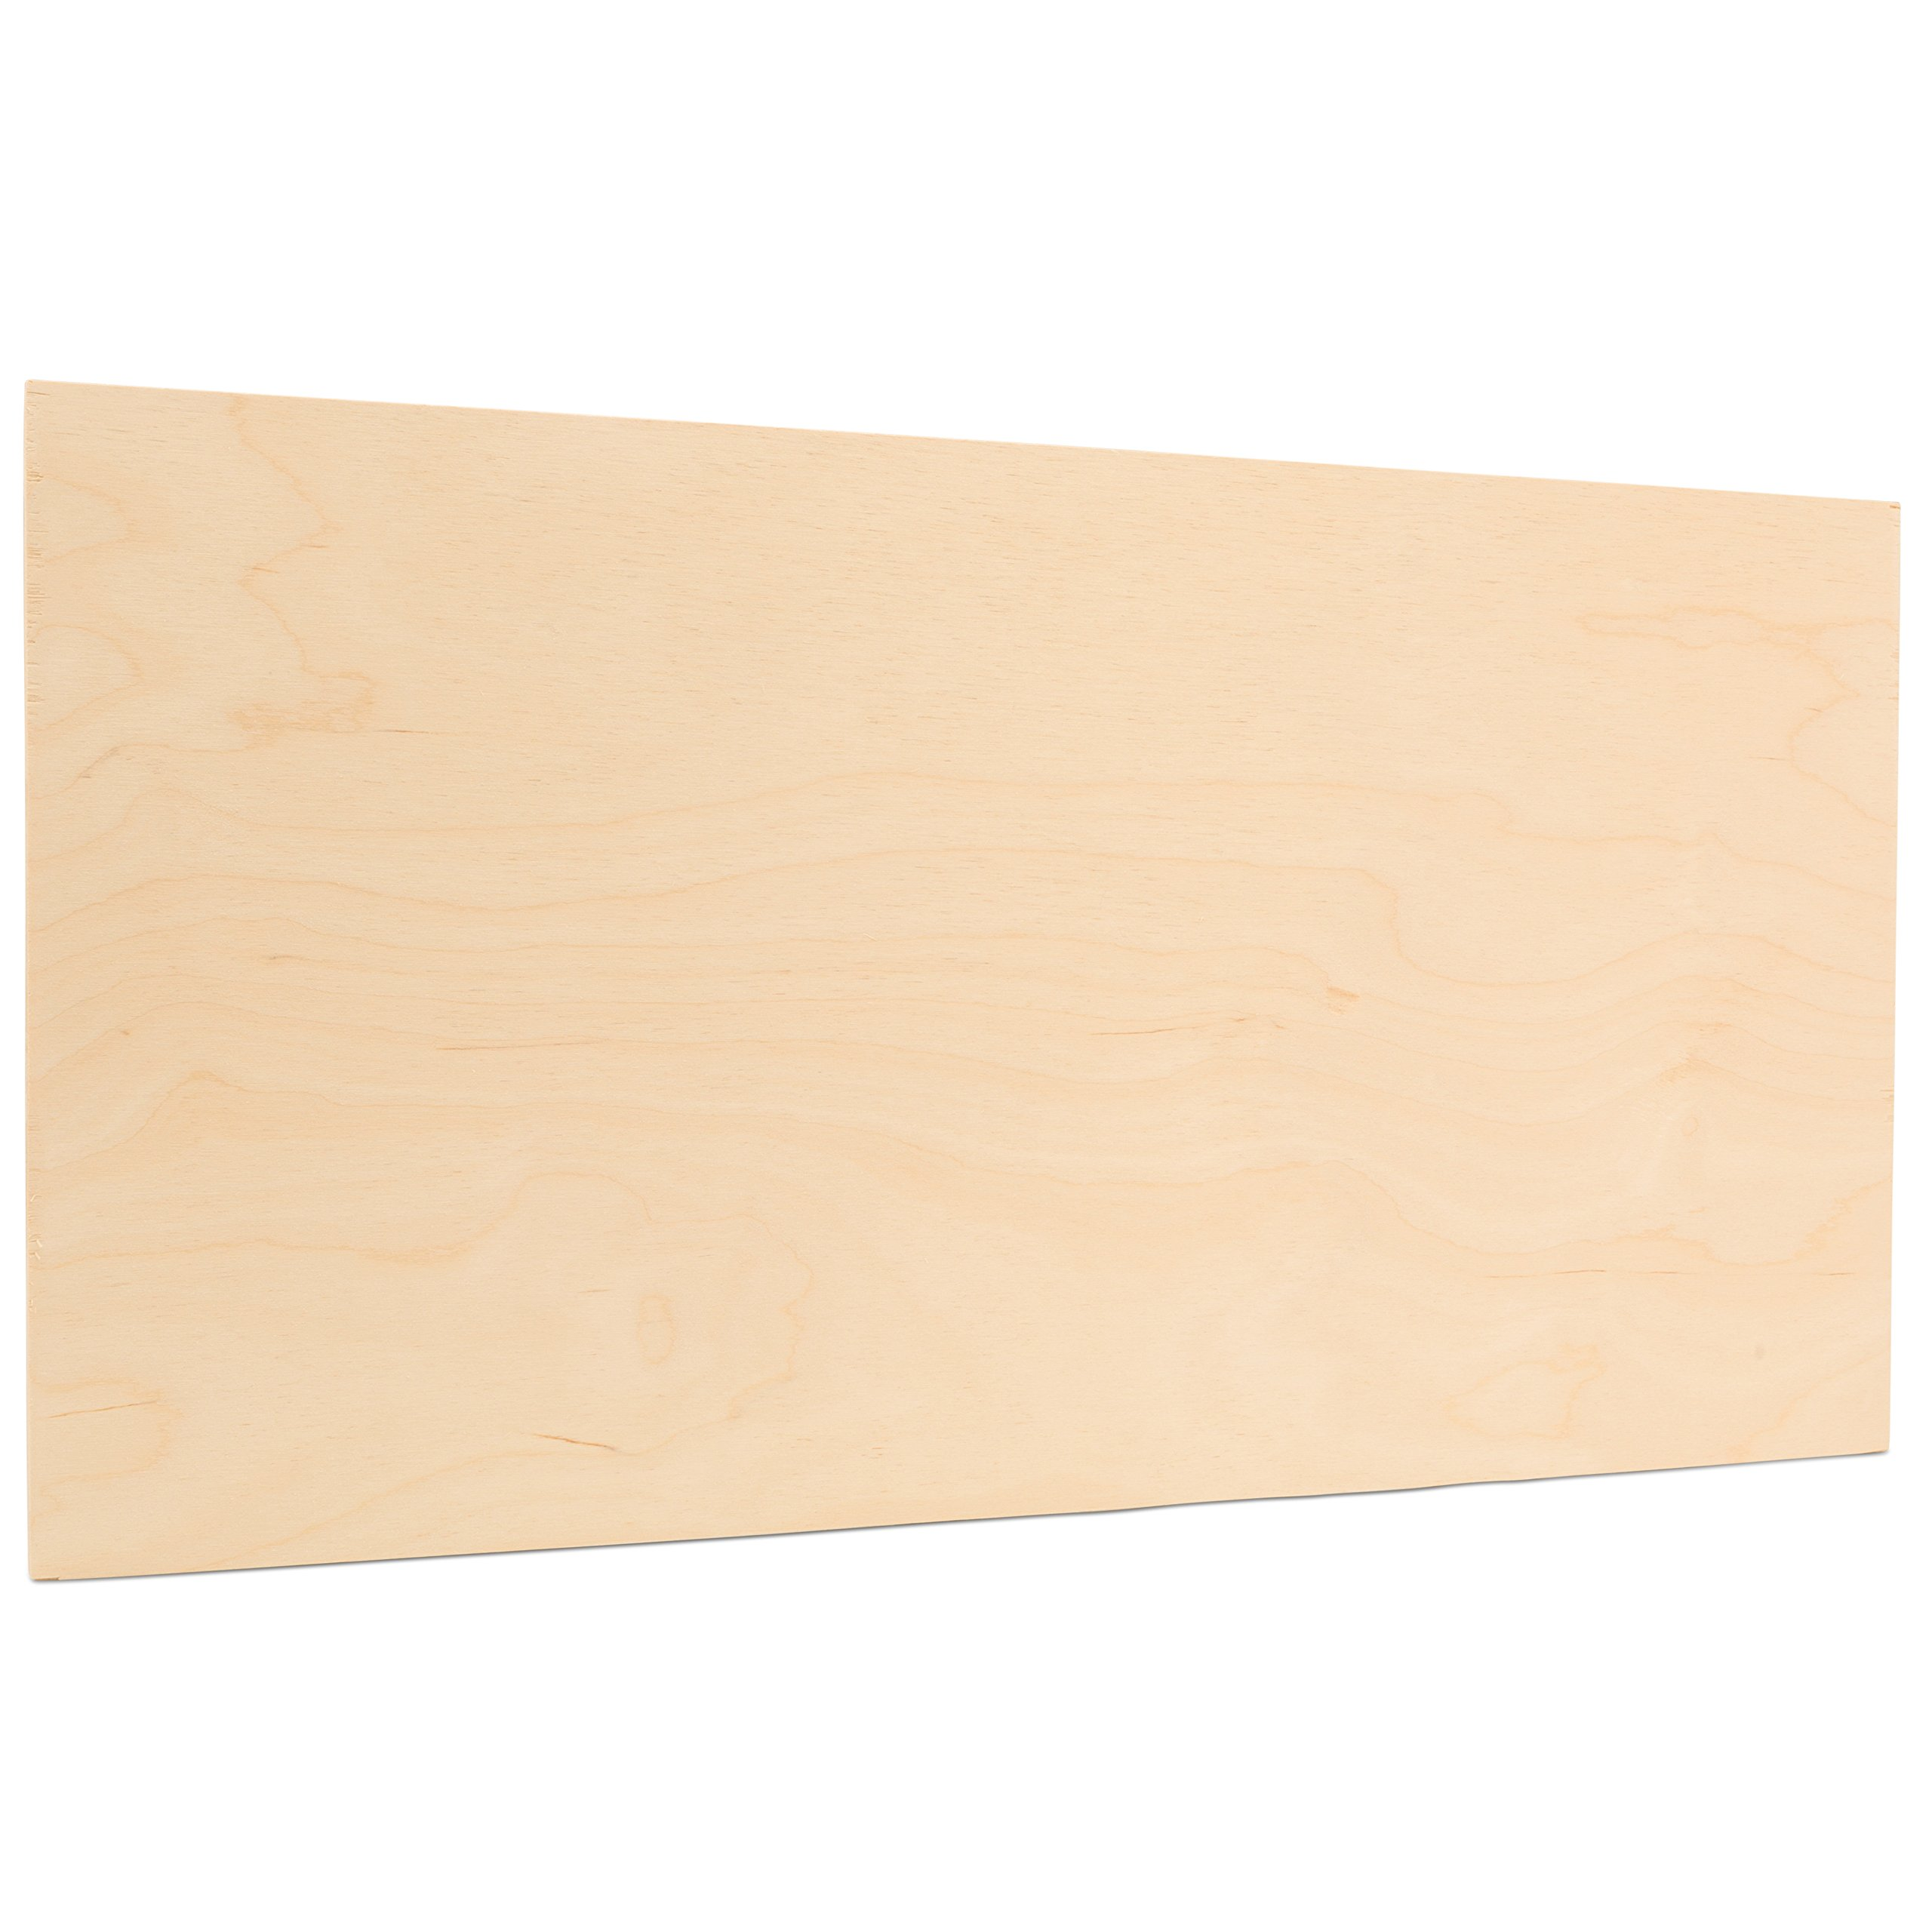 5 mm 1/4'' X 24'' X 24'' Premium Baltic Birch Plywood – B/BB Grade - 12 Flat Sheets By Woodpeckers